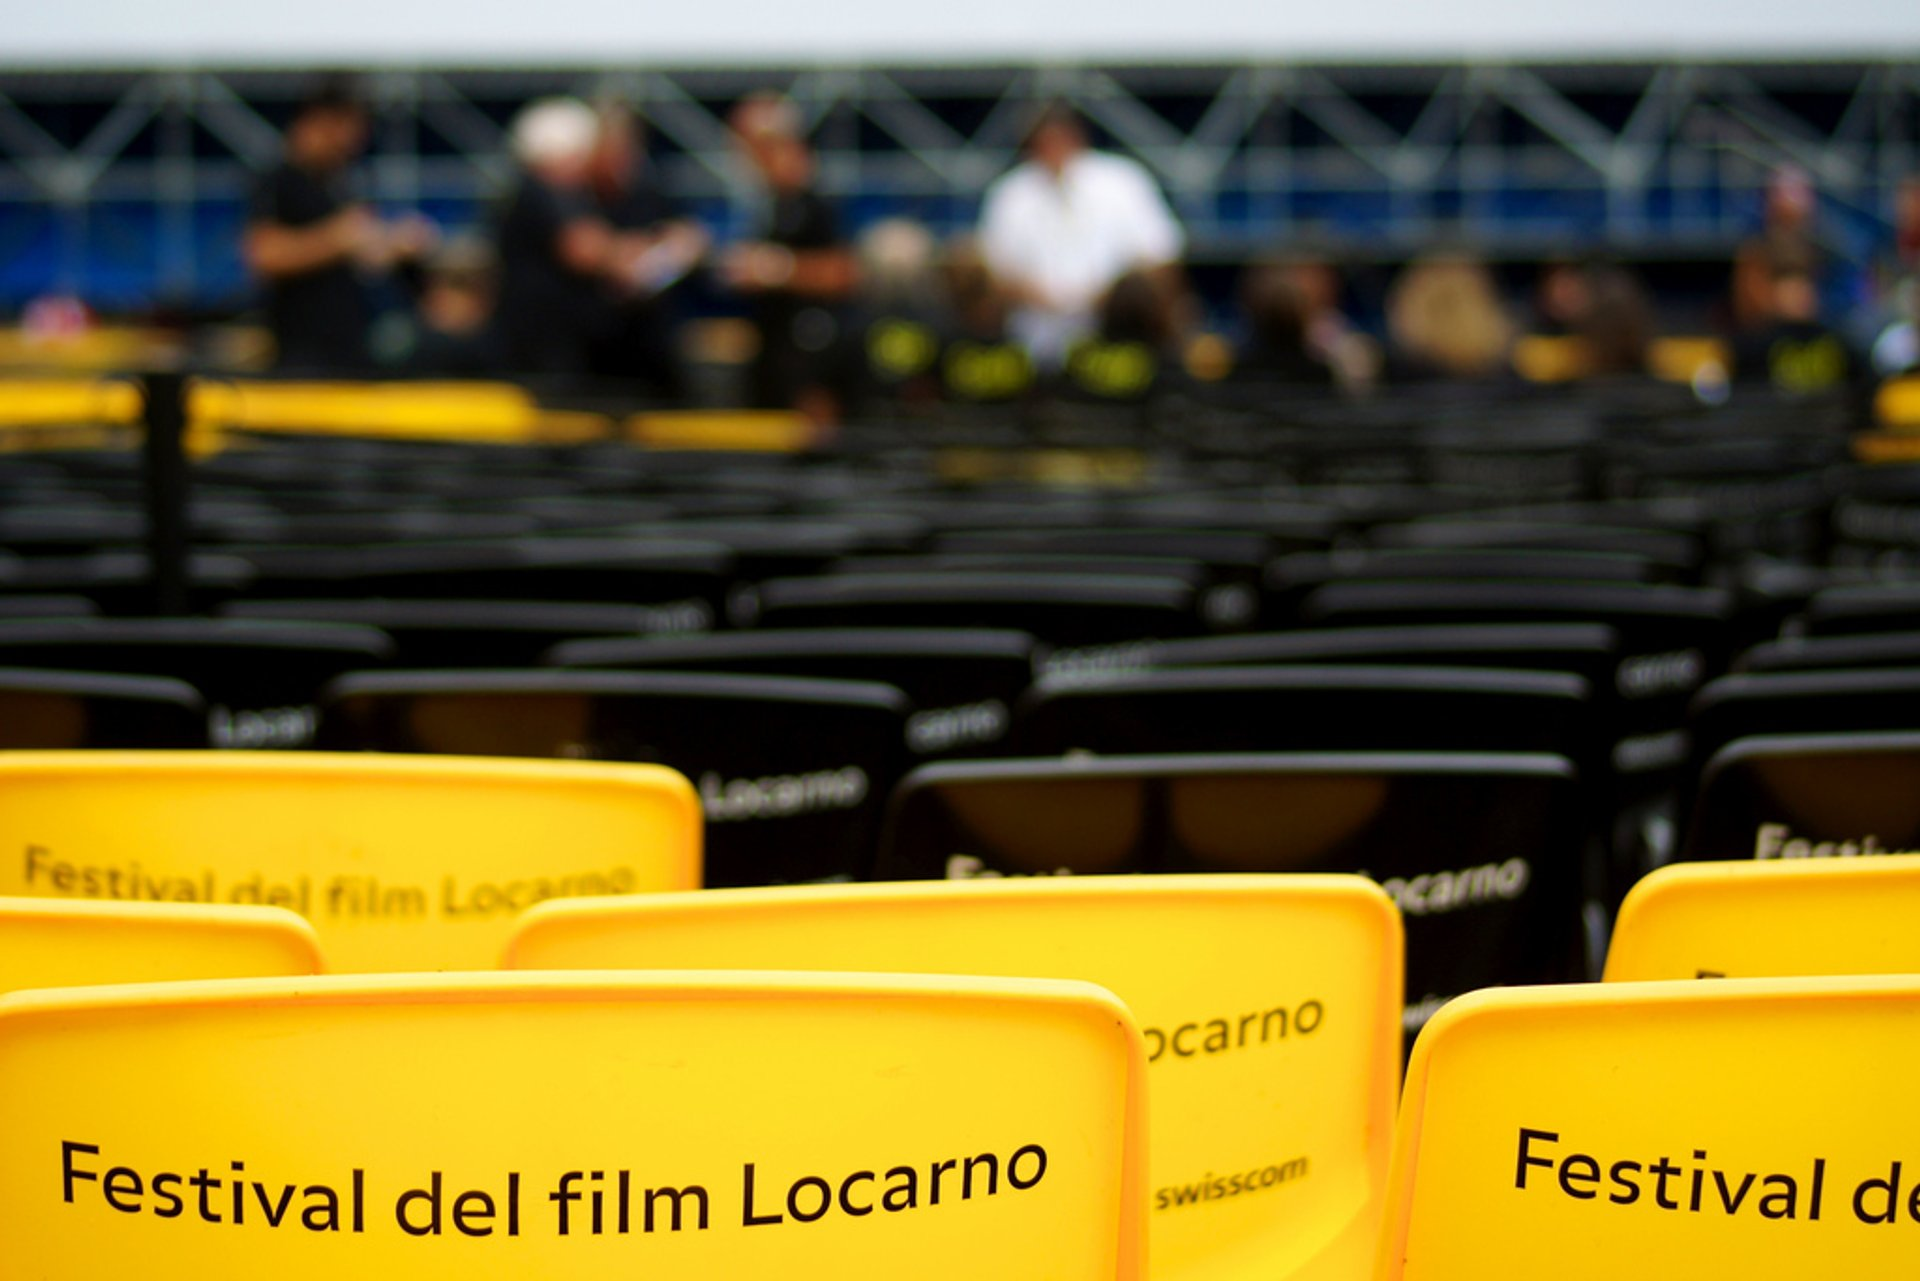 Locarno Film Festival in Switzerland - Best Season 2020